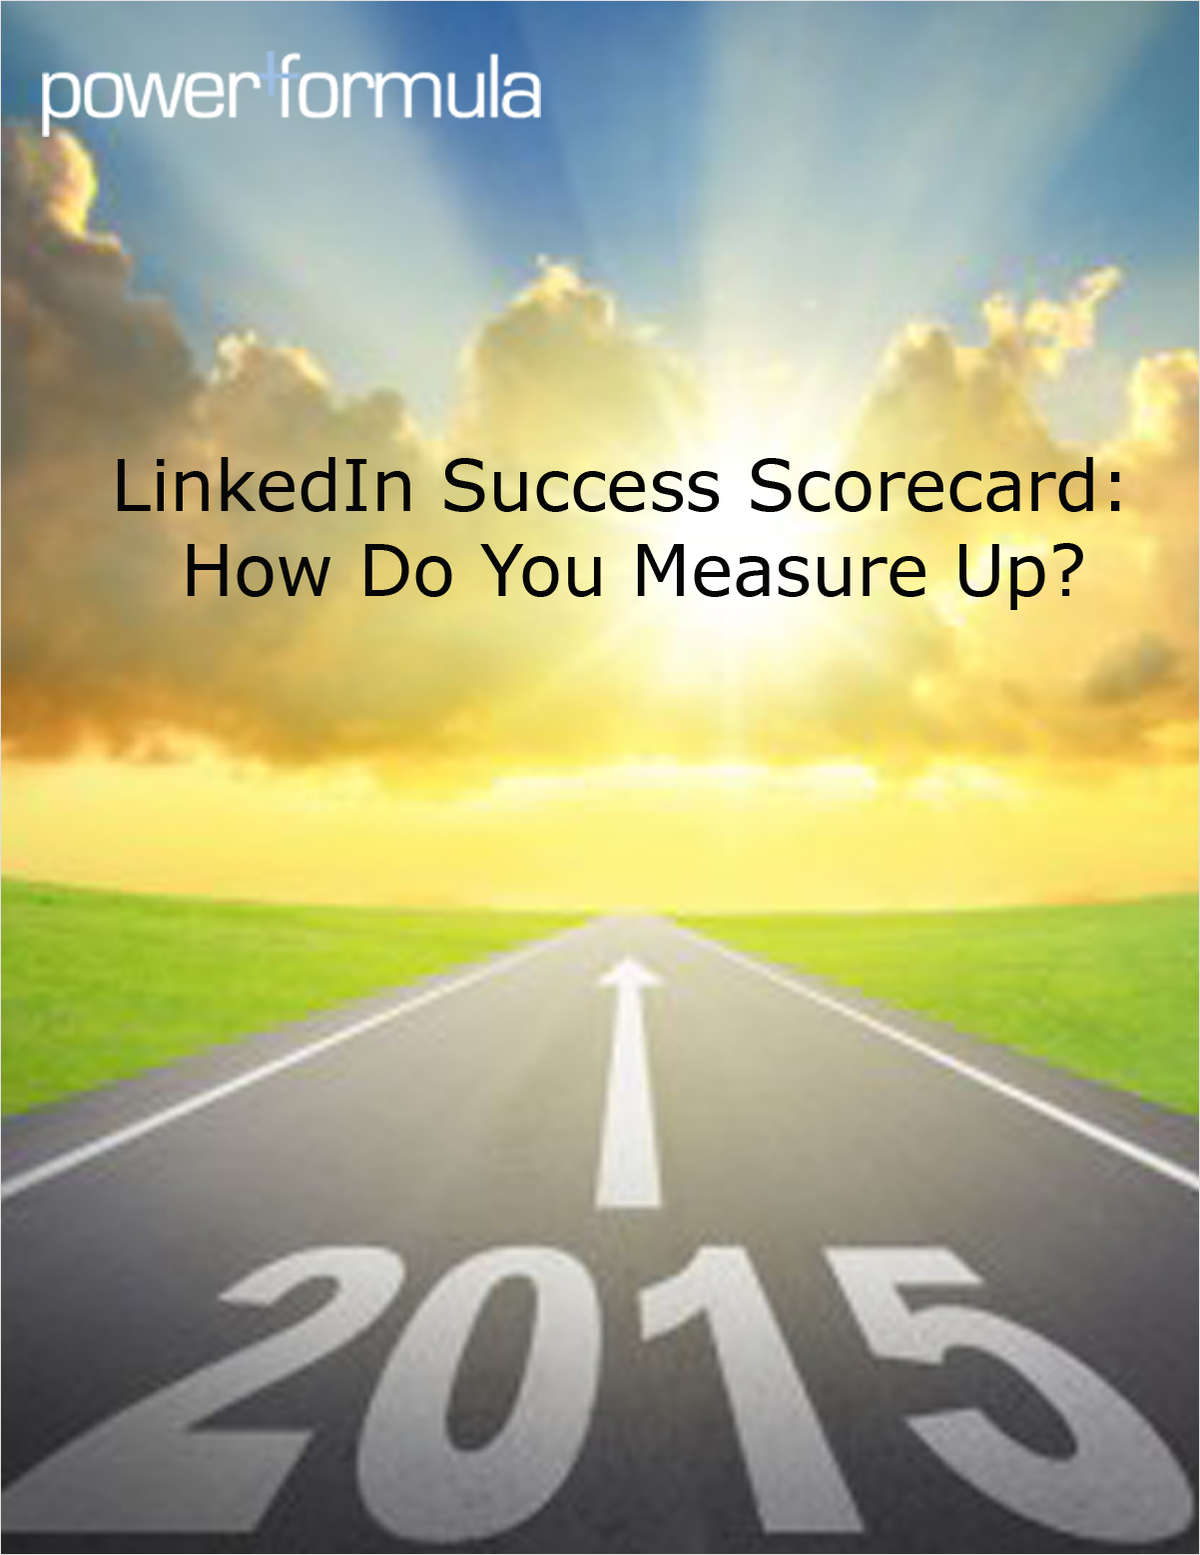 LinkedIn Success Scorecard: How Do You Measure Up?